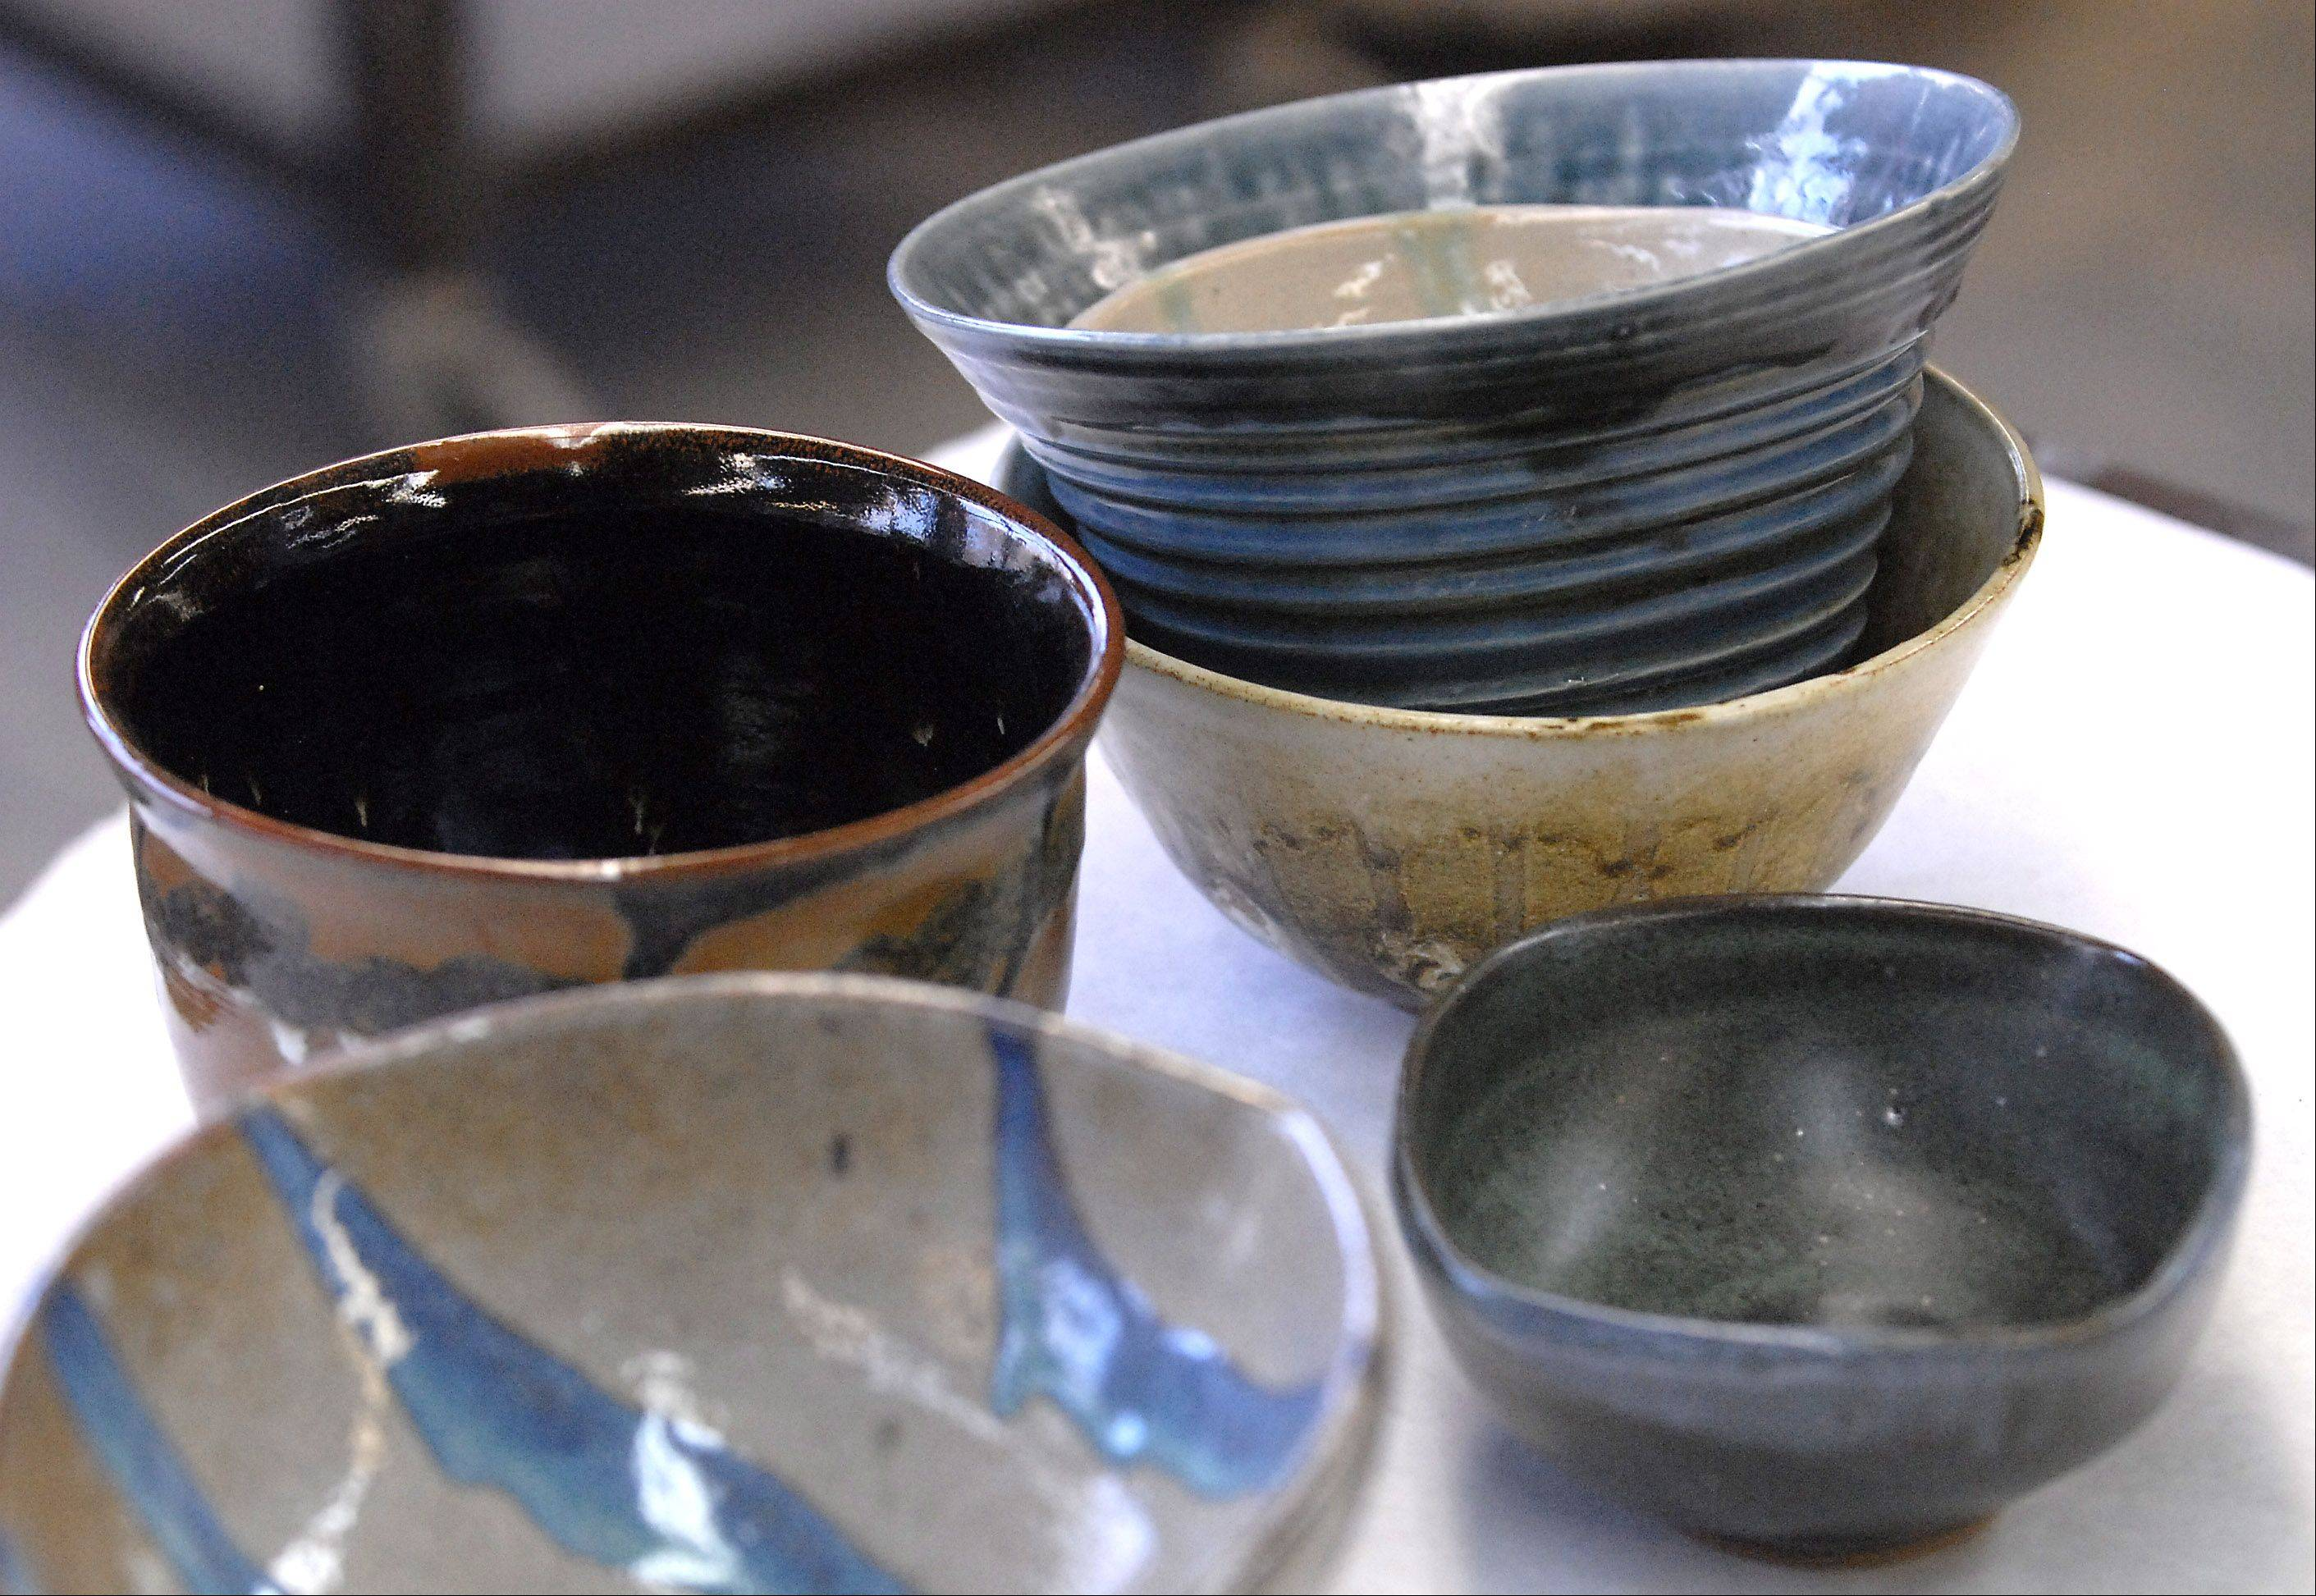 Support food pantries at the Empty Bowls ceramic exhibit and fundraiser at Oakton Community College in Des Plaines.